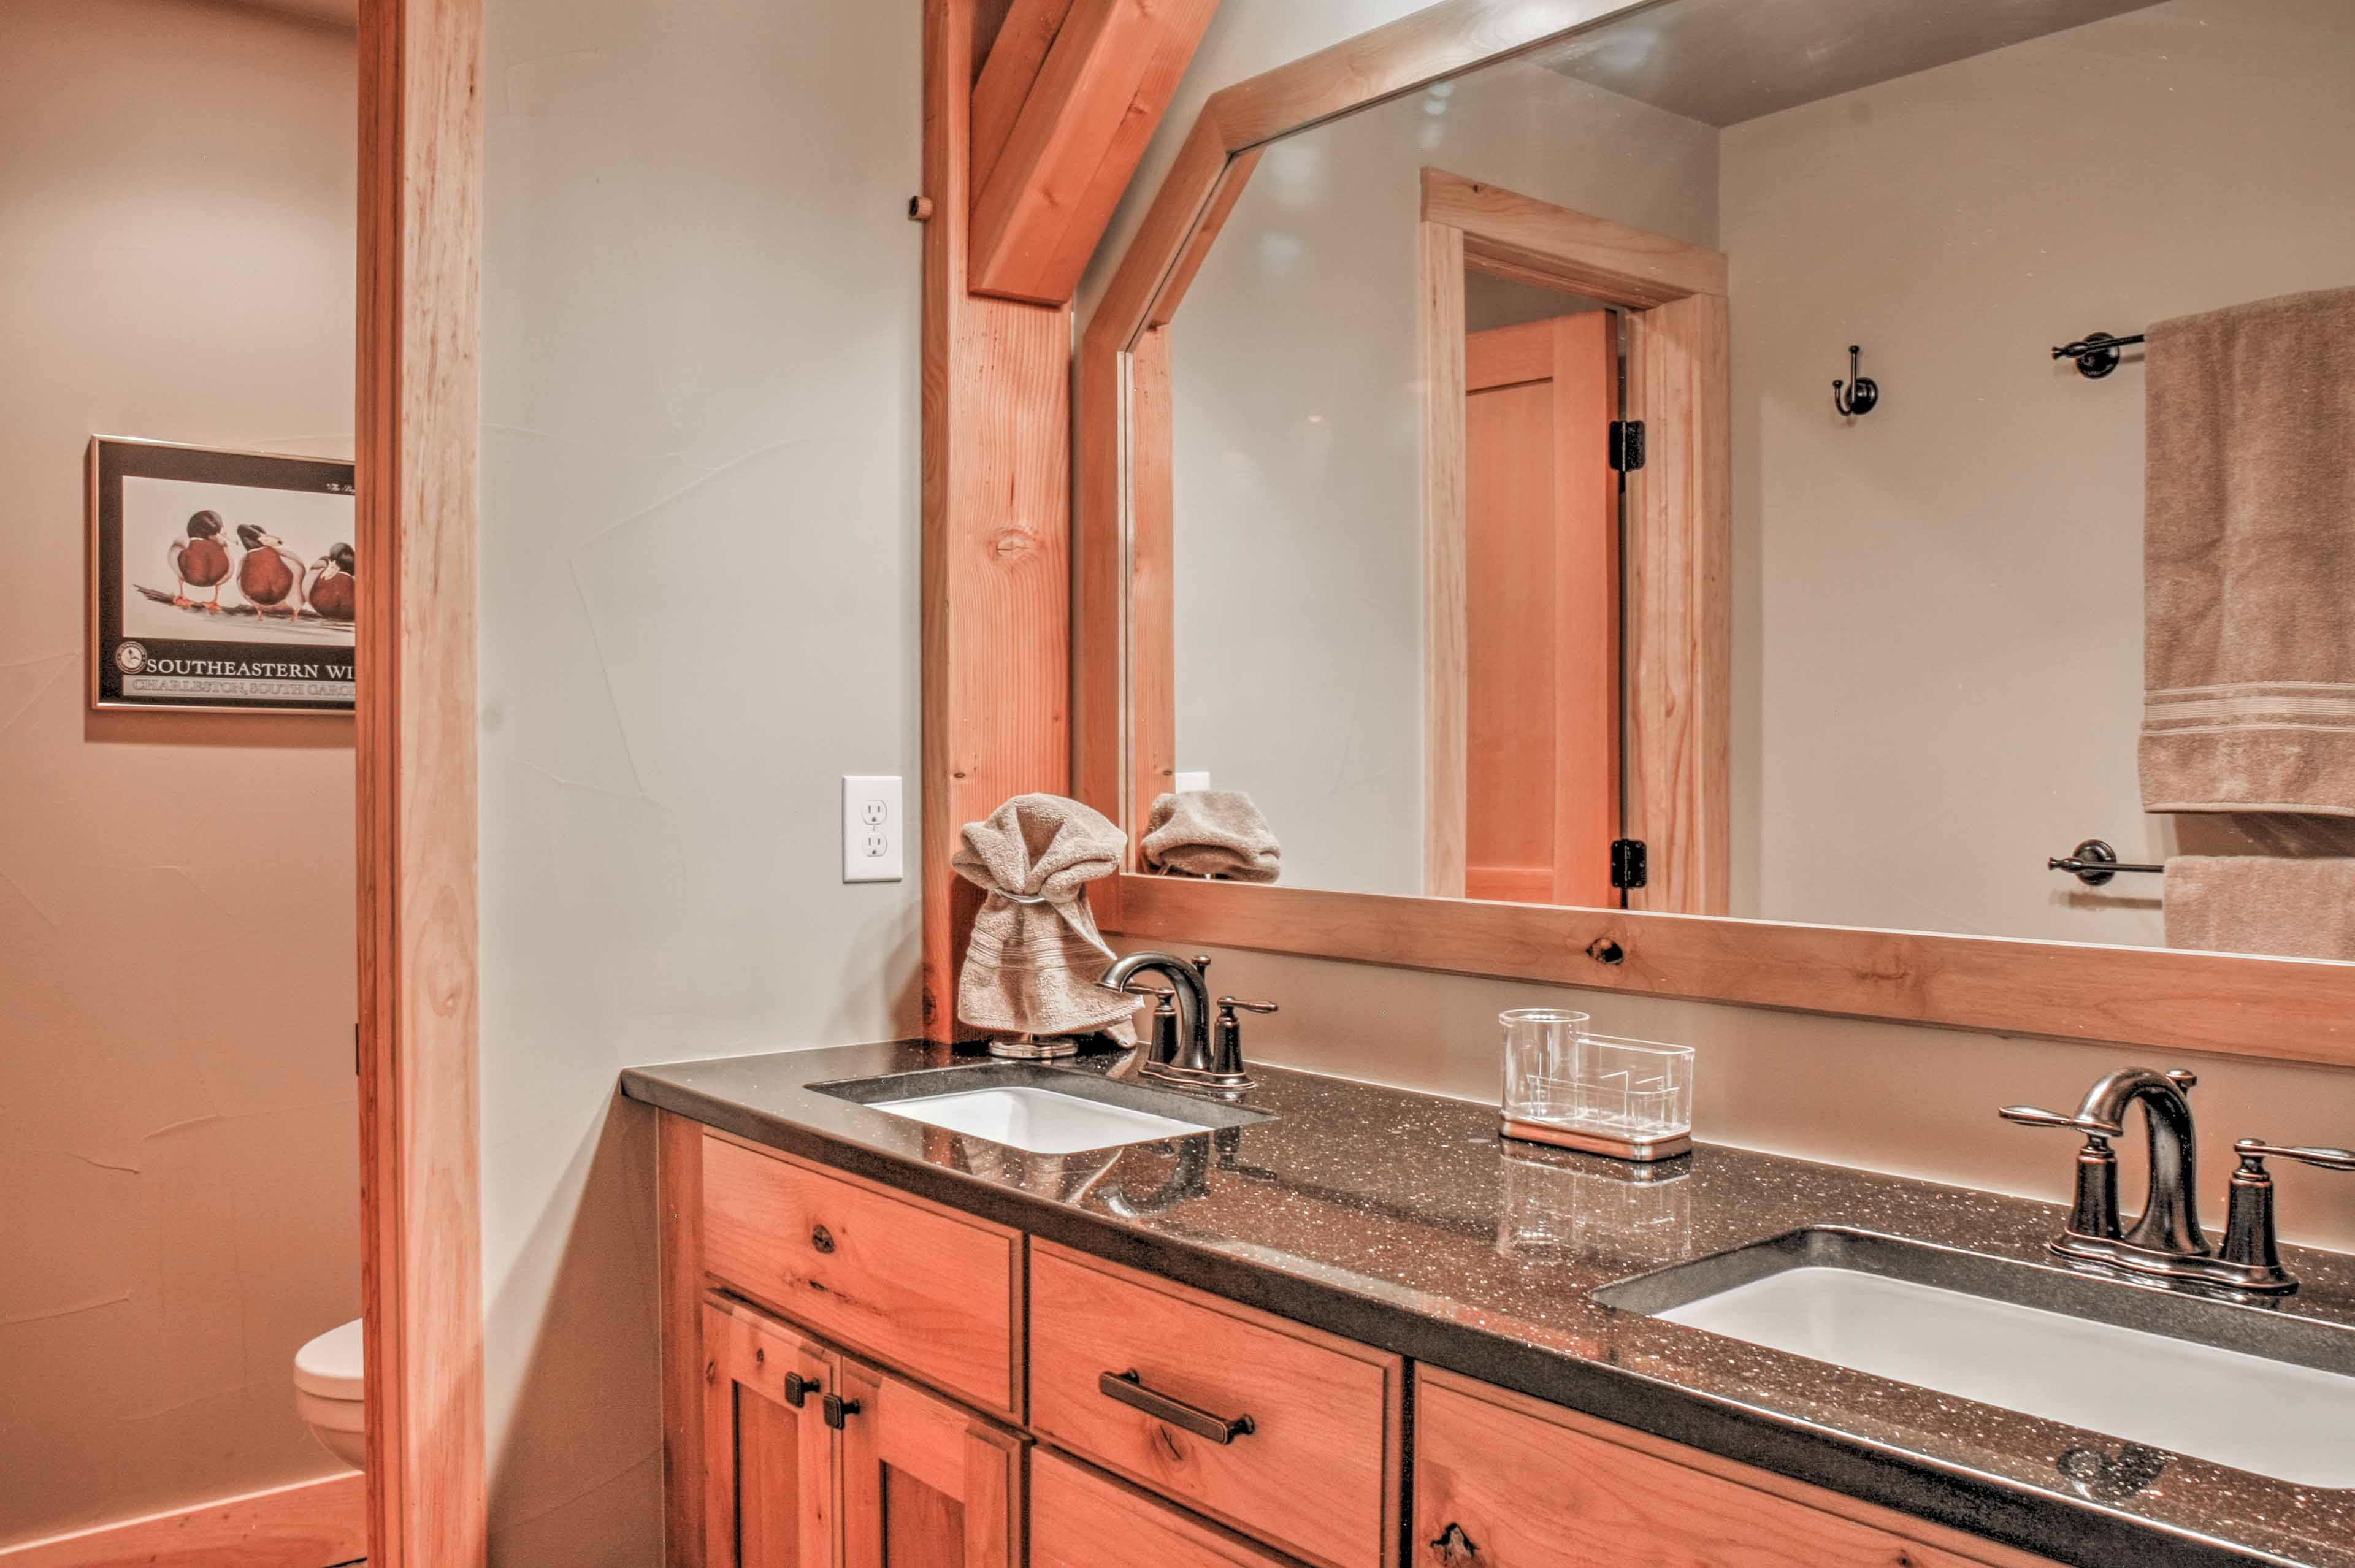 The first bathroom is equipped with a his-and-hers vanity sink and shower.